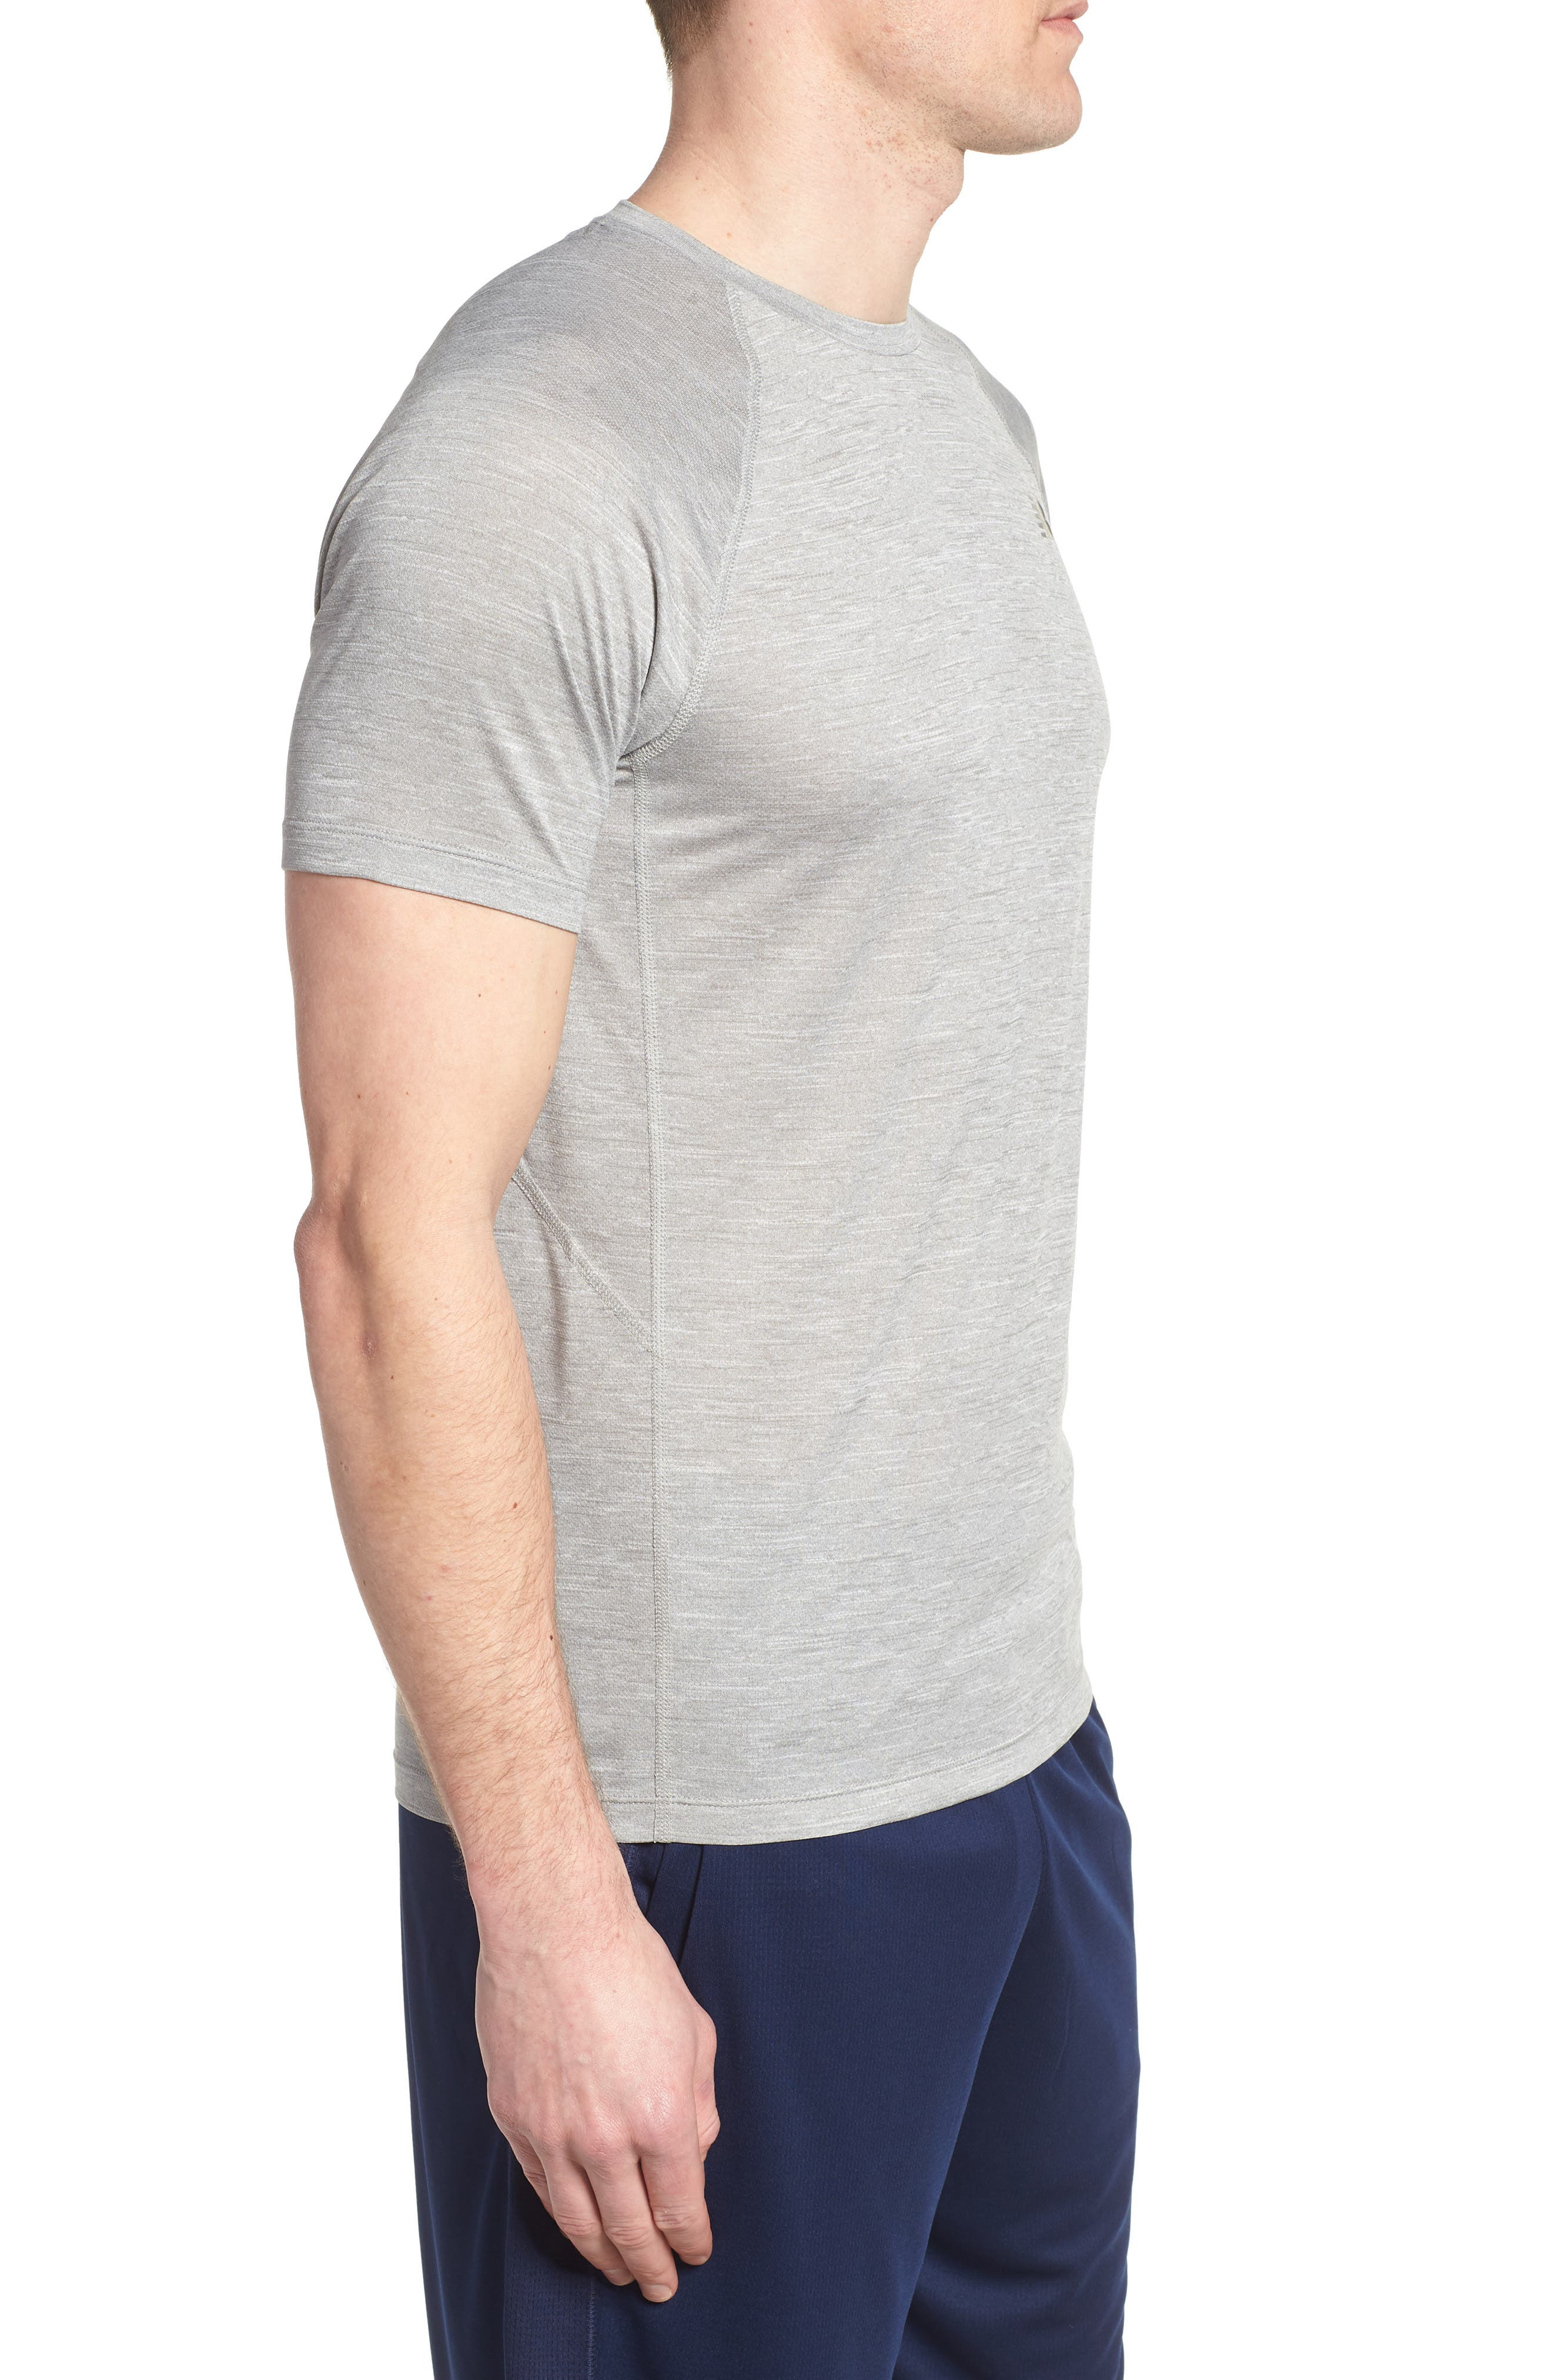 Tenacity Crewneck T-Shirt,                             Alternate thumbnail 3, color,                             ATHLETIC GREY